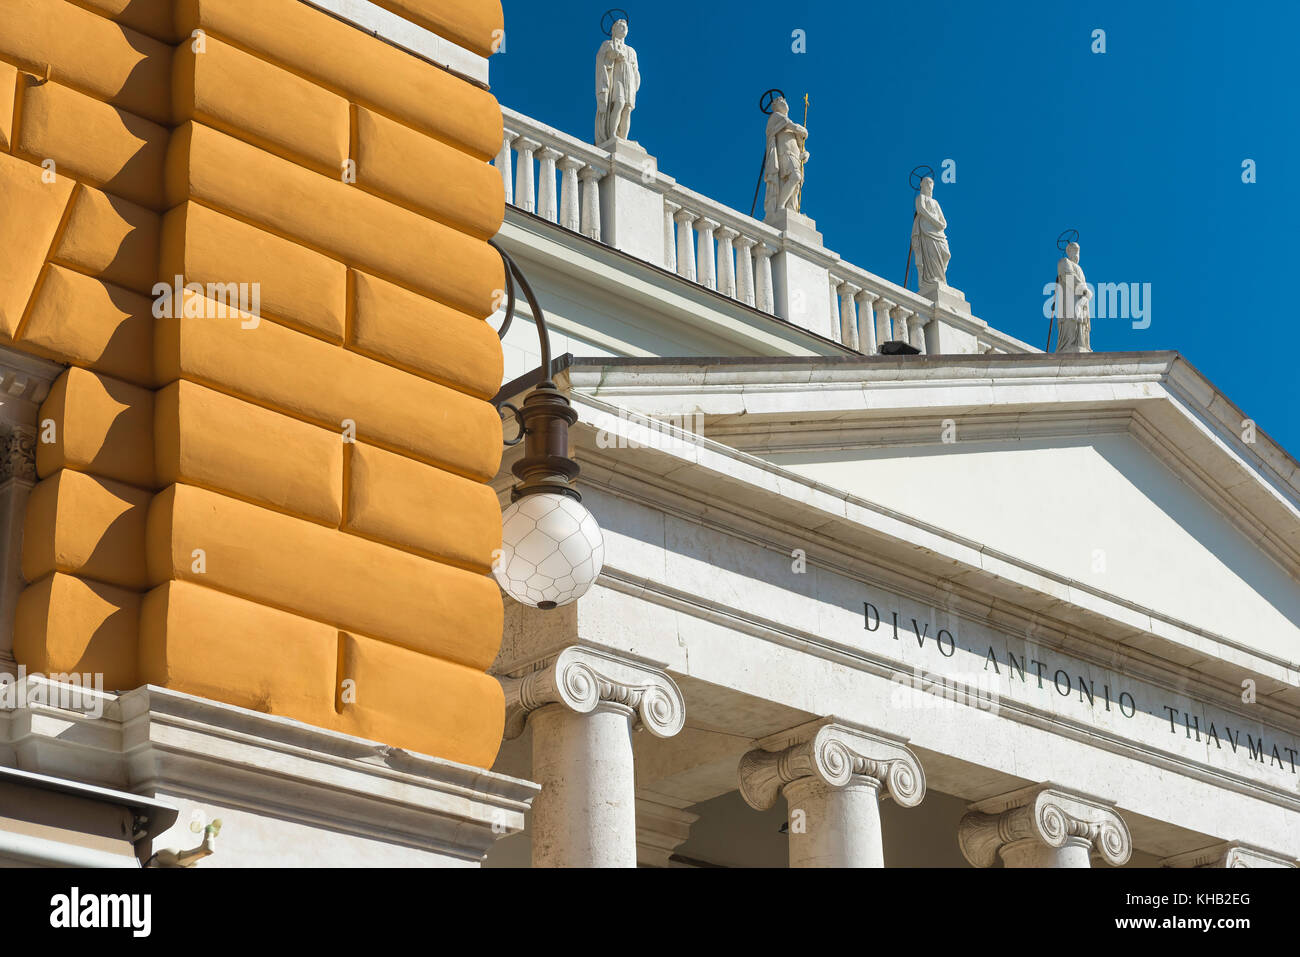 Trieste architecture, detail of the pediment and roofline of the Chiesa di Sant'Antonio Thaumaturgo in the canal - Stock Image